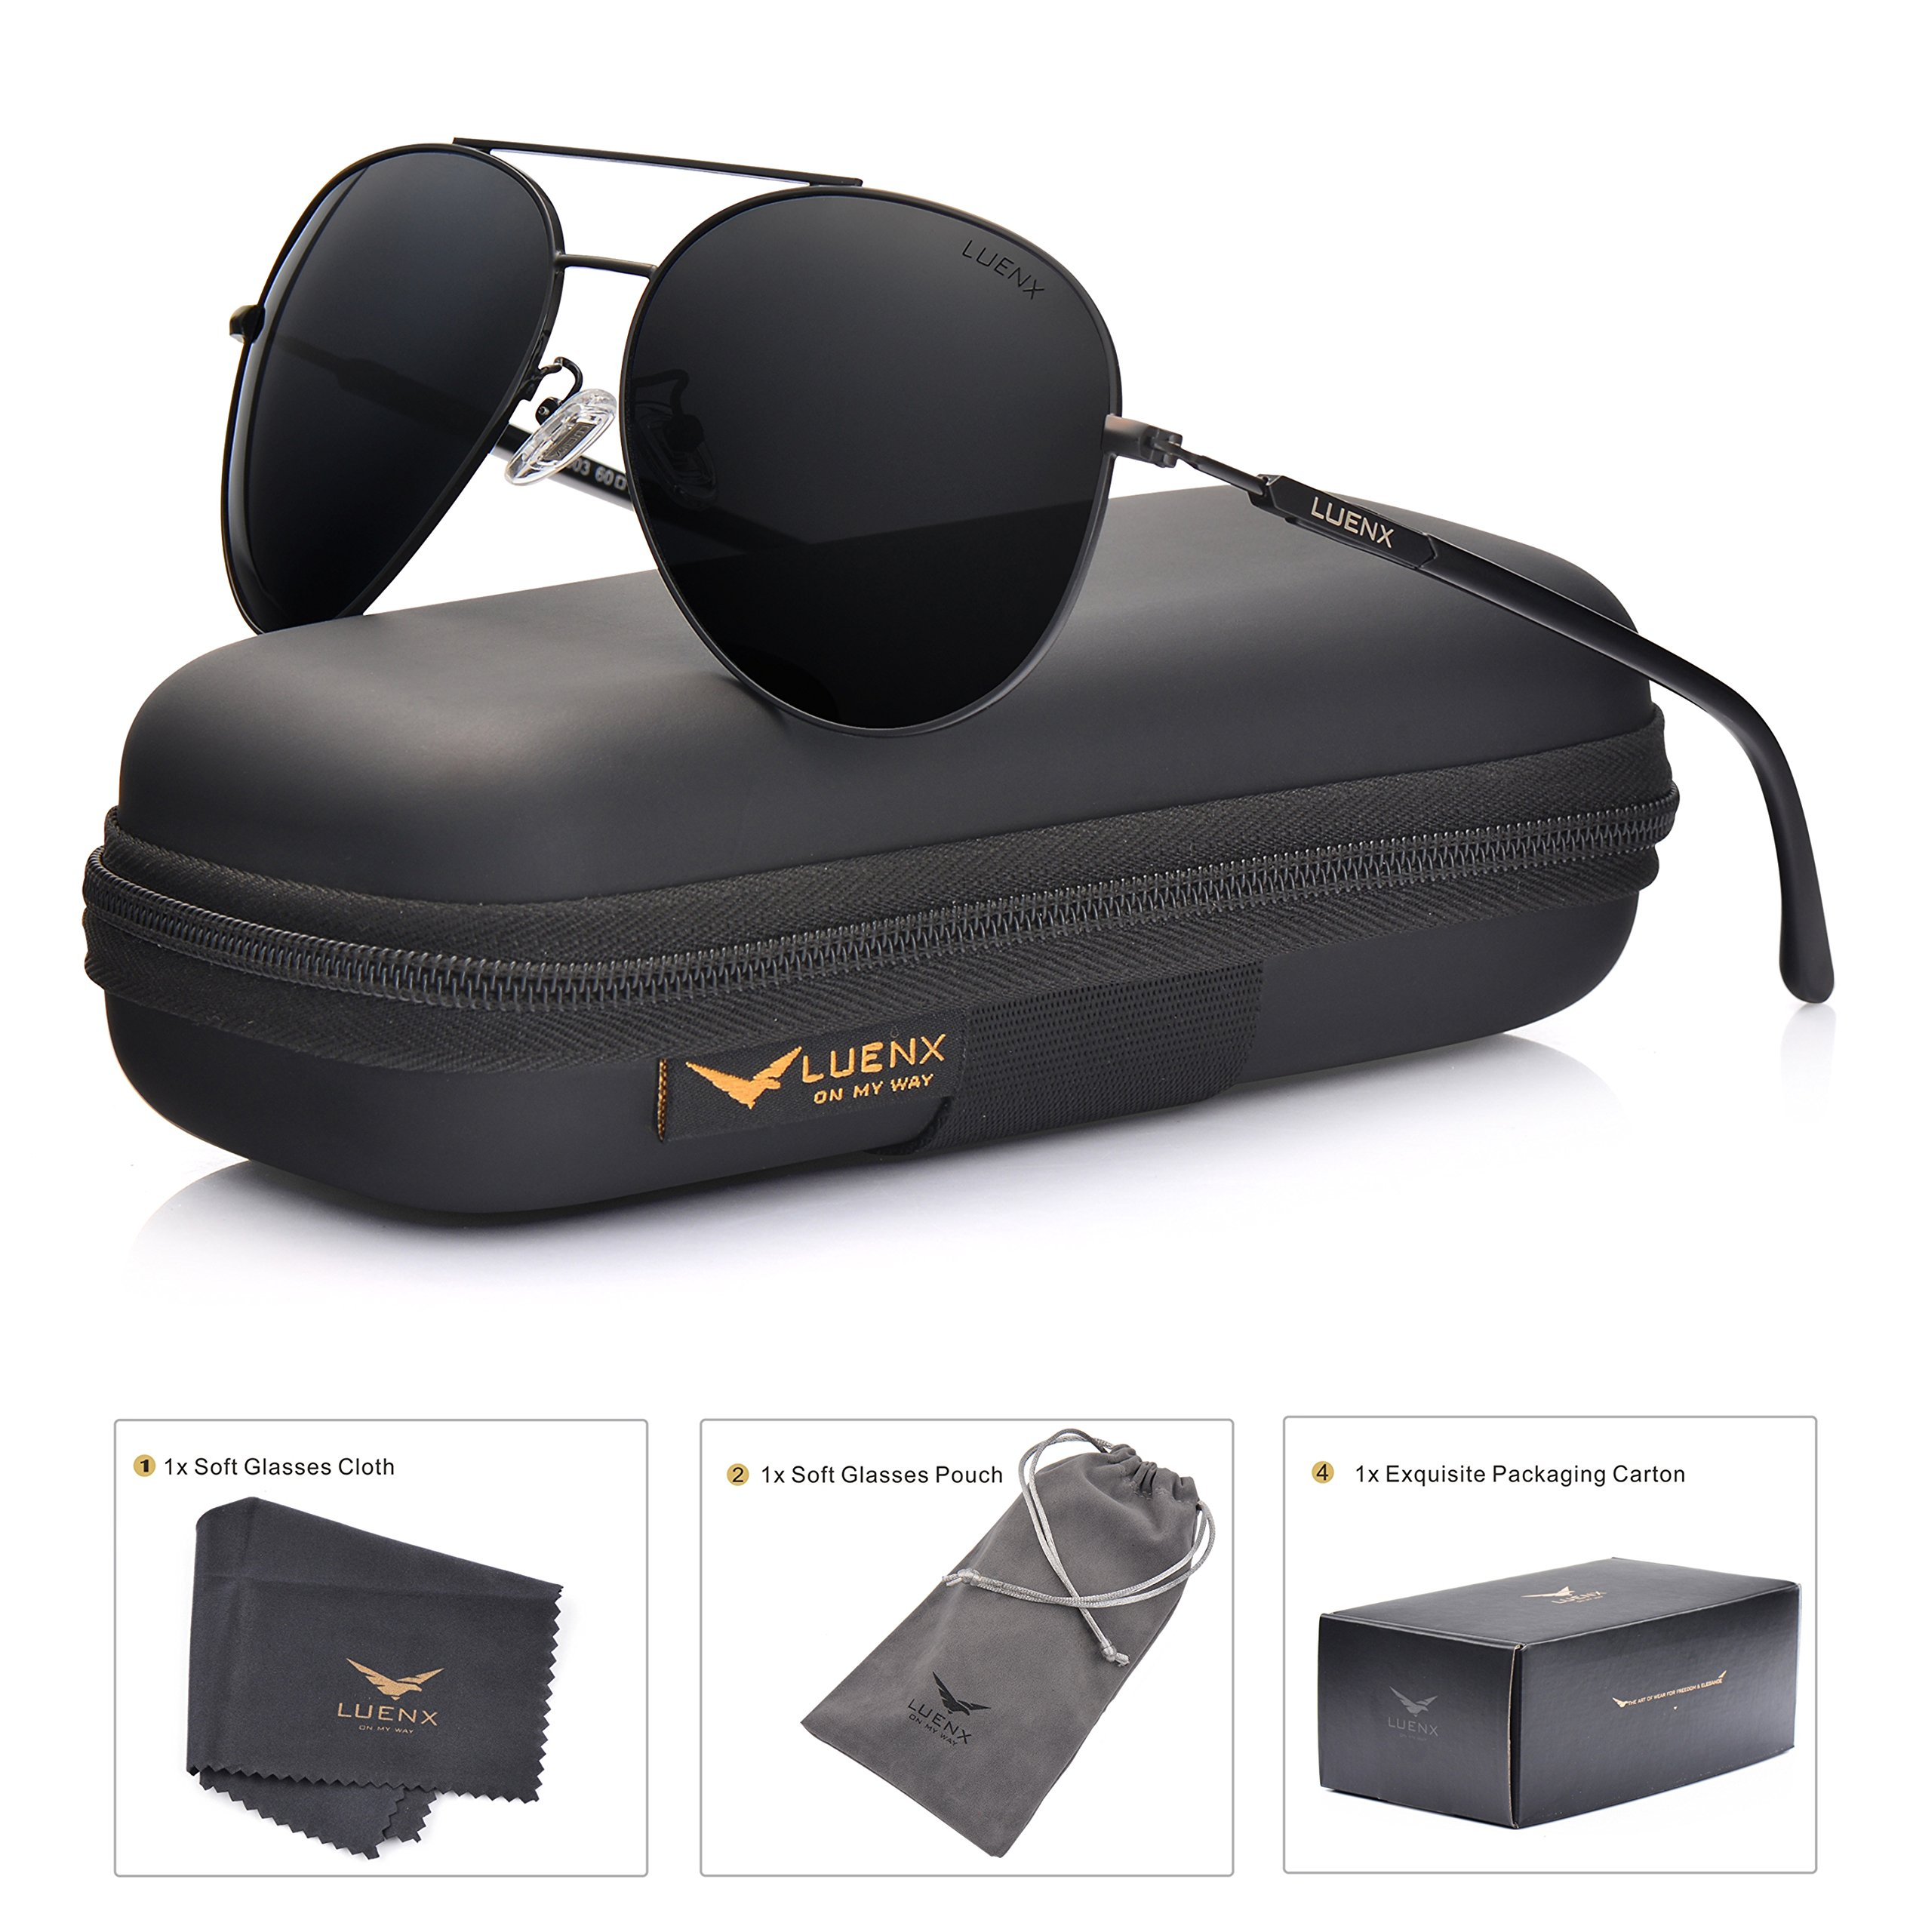 LUENX Aviator Sunglasses Mens Women Polarized Black Lens Black Metal Frame Dark 60mm with Case - UV400 by LUENX